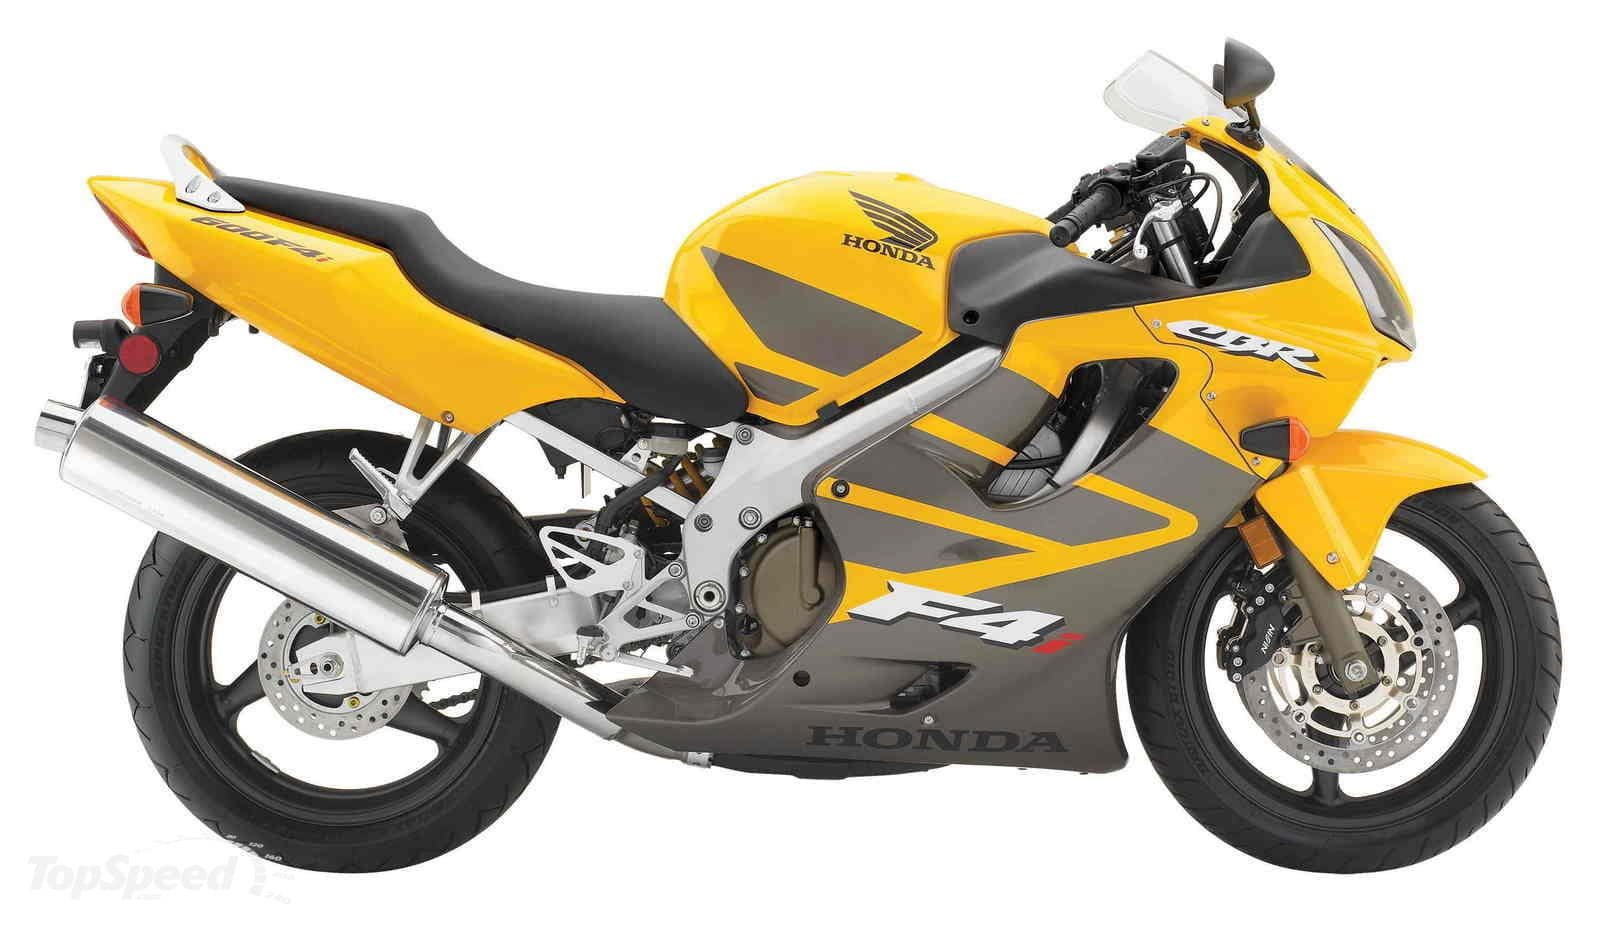 A yellow Honda CBR600F4i. The best one to buy used!